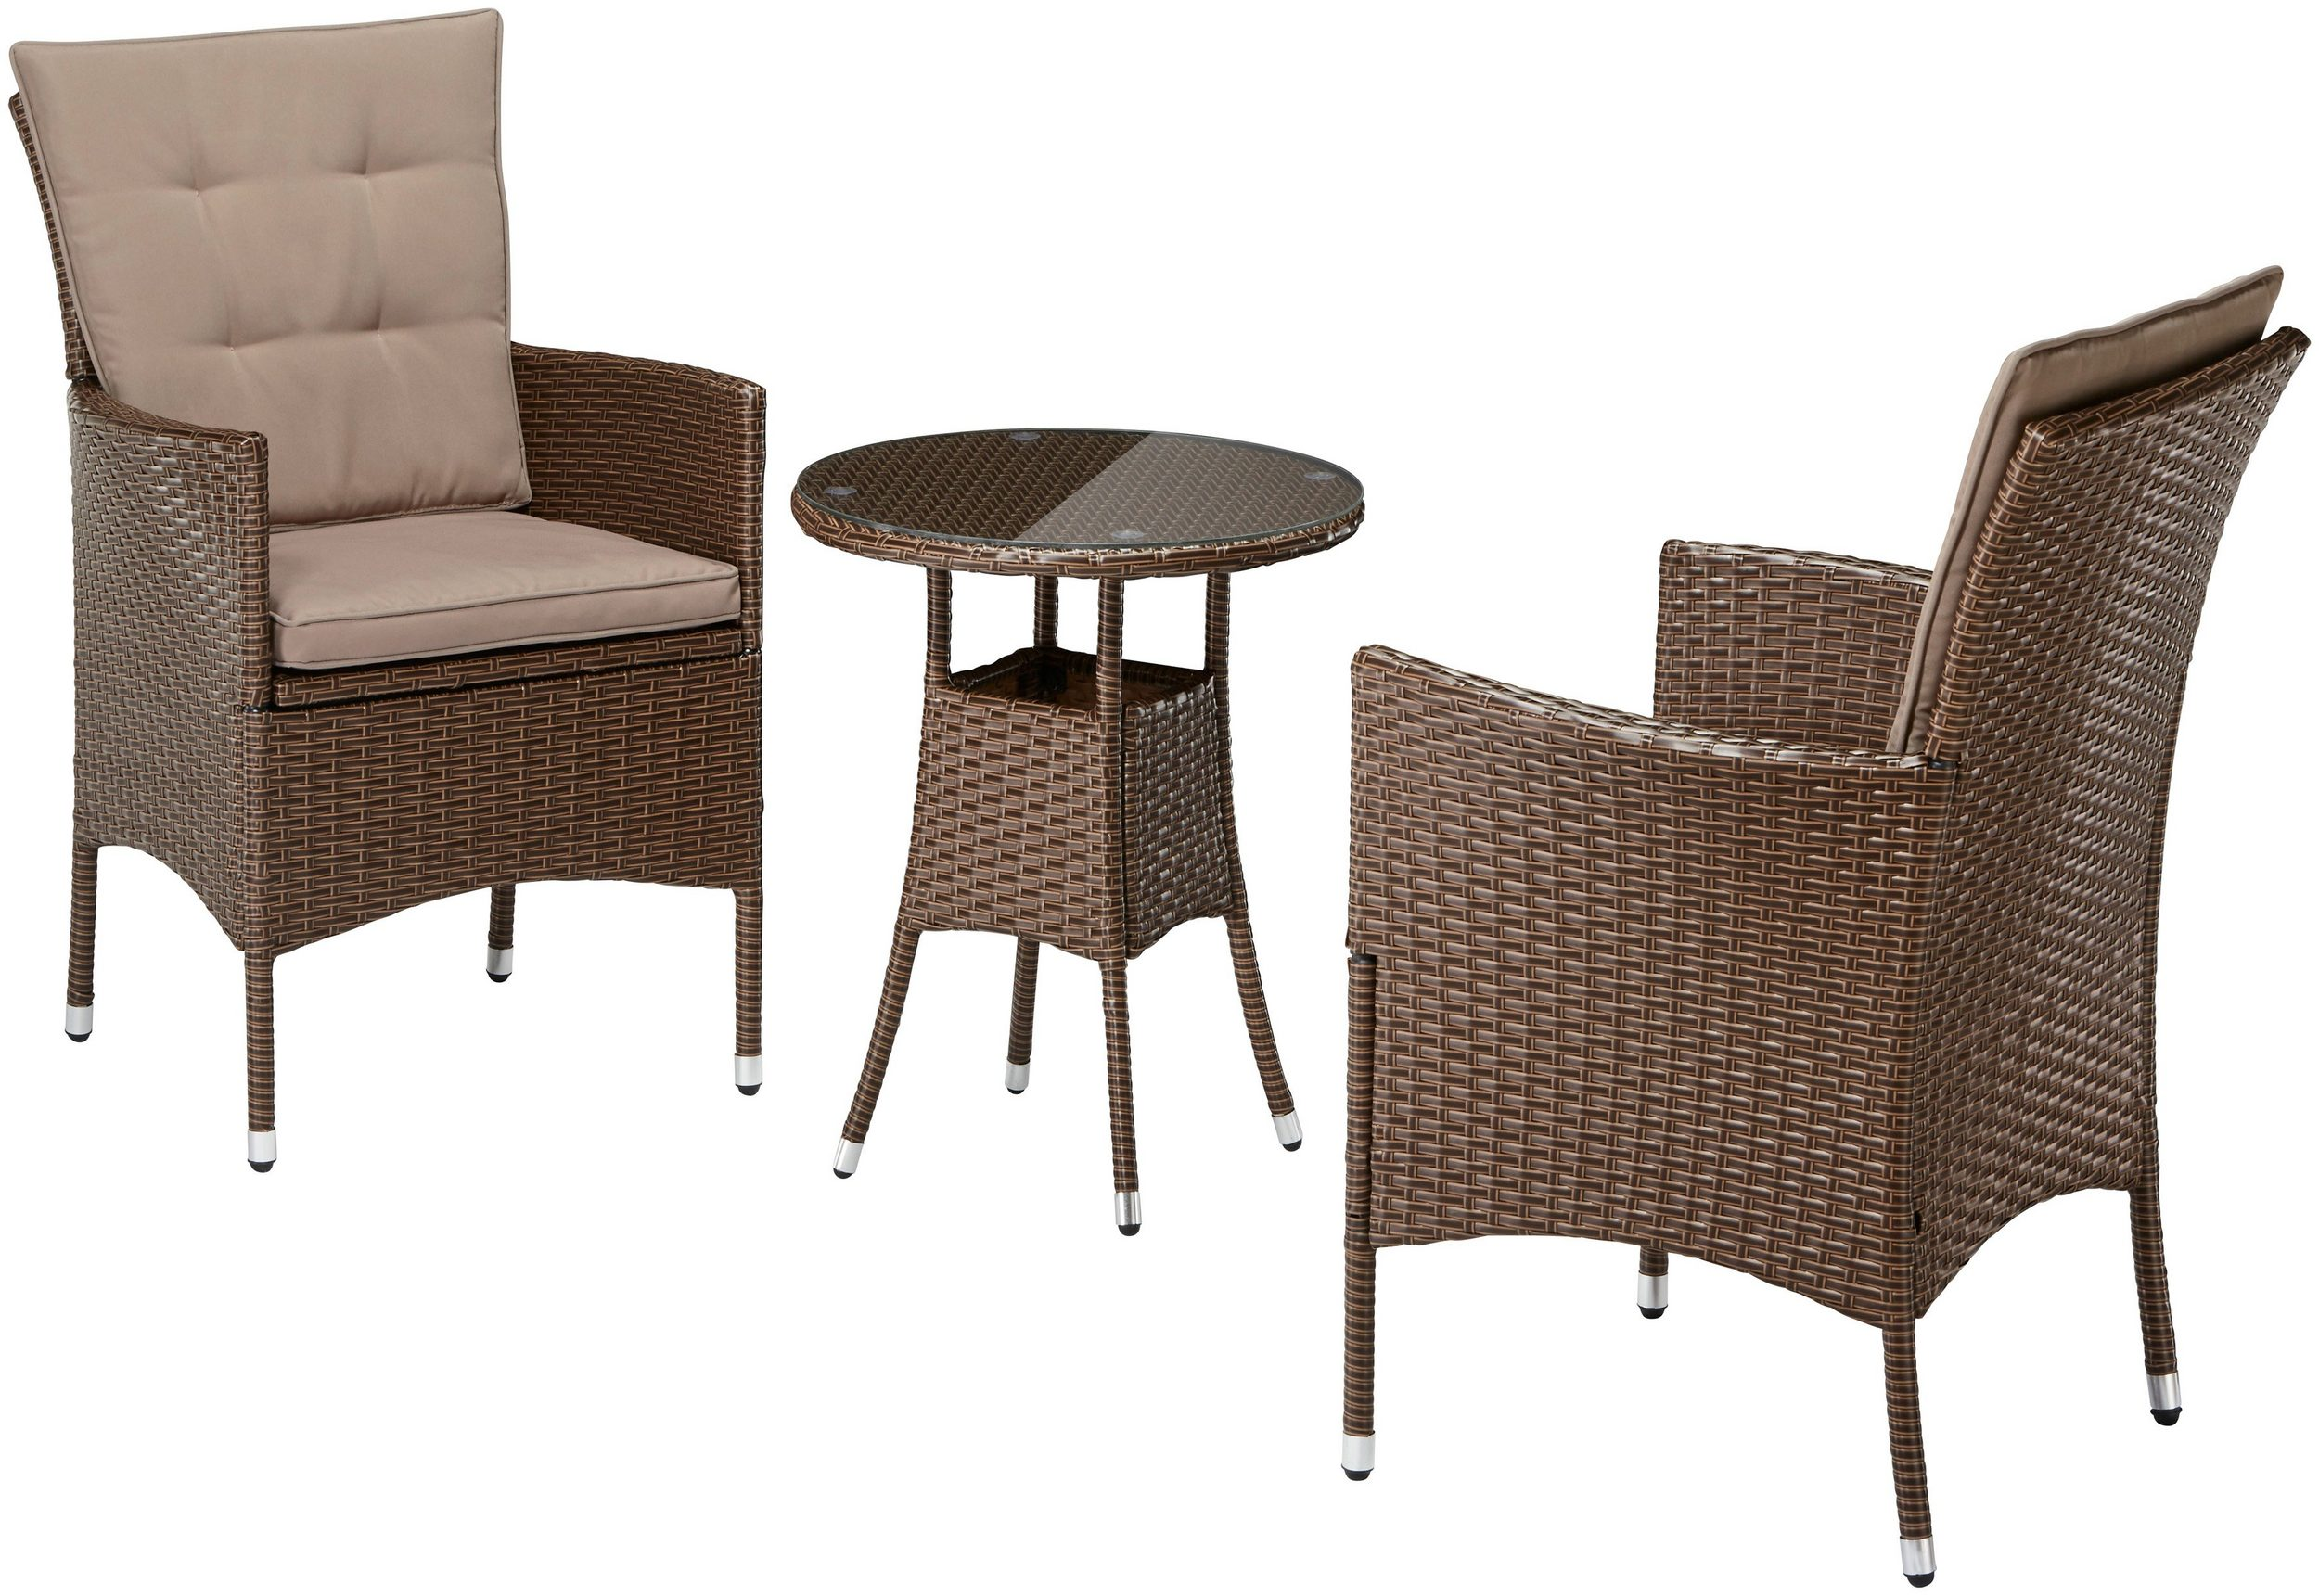 gartengruppe essgruppe tisch 50cm st hle polyrattan auflagen braun 7150471 ebay. Black Bedroom Furniture Sets. Home Design Ideas